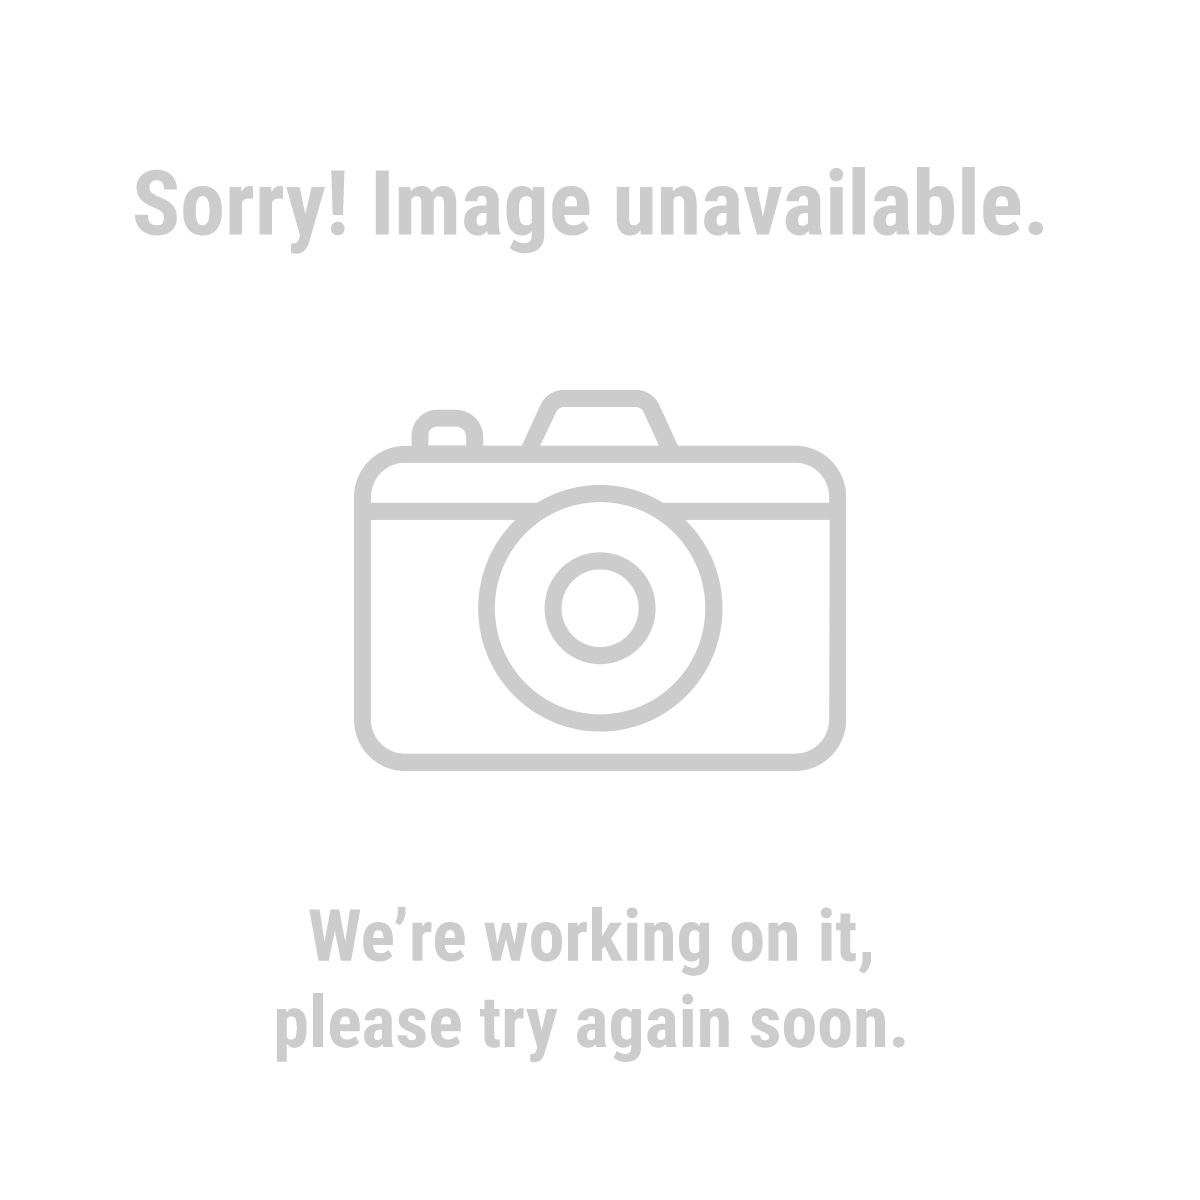 Western Safety 99692 PVC with Dipped Sand Gloves, Large